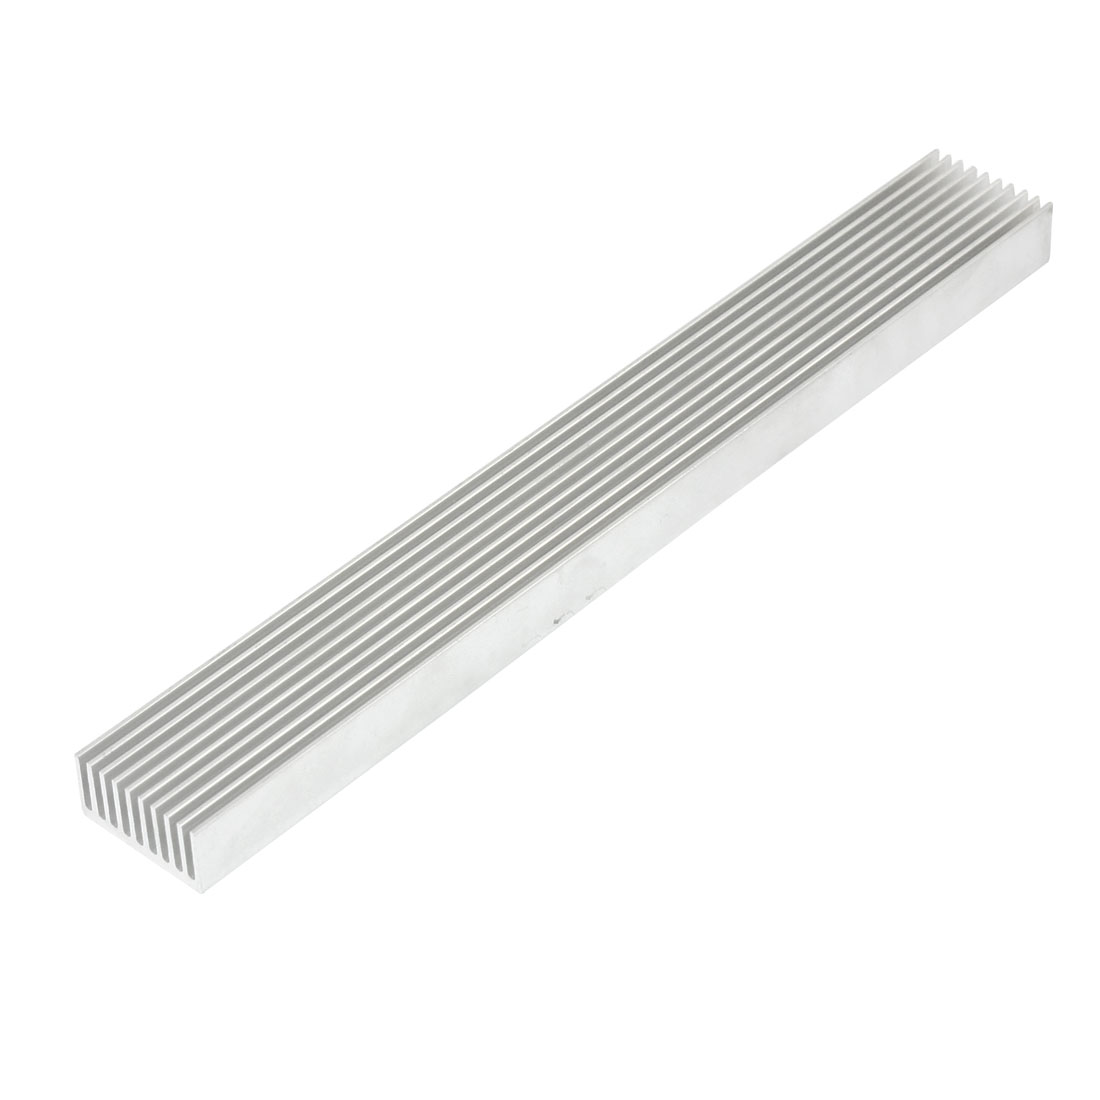 Silver White 196mmx25mmx12mm LED Heat Sink Aluminum Cooling Fin